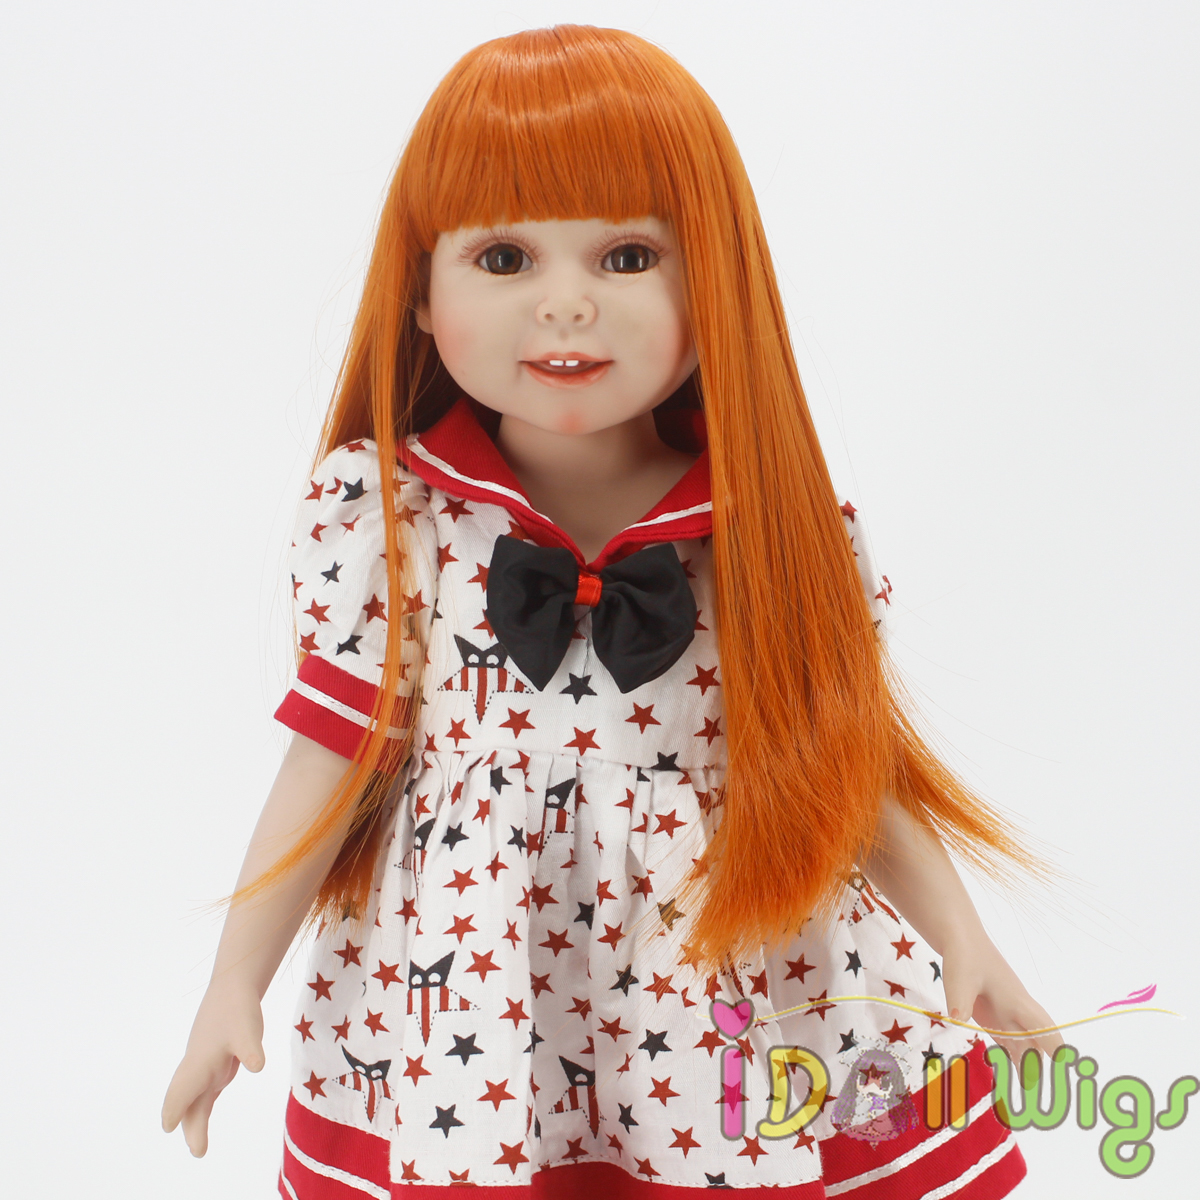 Wigs Only! Heat Resistant Synthetic Hair Wig for 18'' American Girl Dolls,Reborn Dolls with 10-11inch Head Safe Doll Accessories trendy adiors side bang medium heat resistant synthetic wig for women